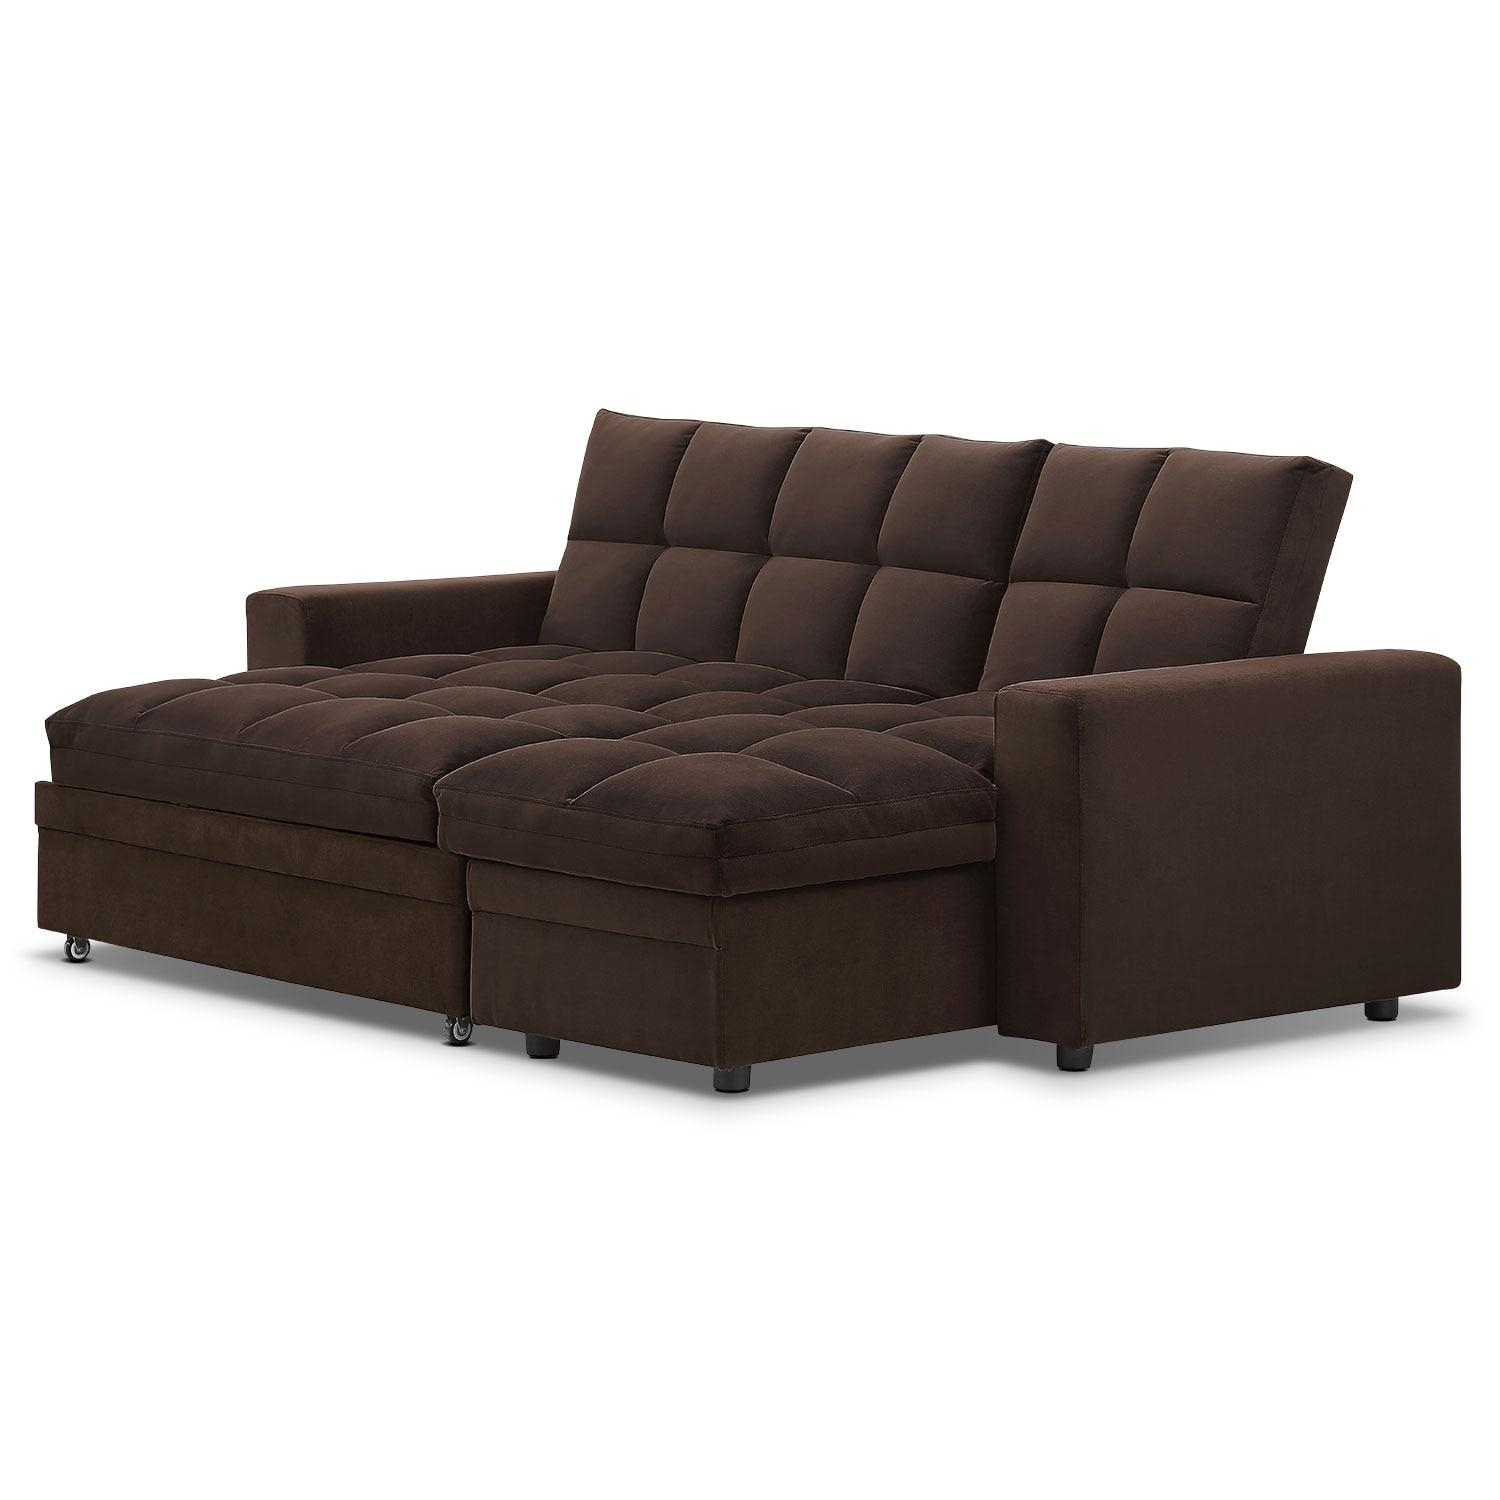 Metro Chaise Sofa Bed With Storage – Brown | American Signature Inside Chaise Sofa Beds With Storage (Photo 11 of 20)